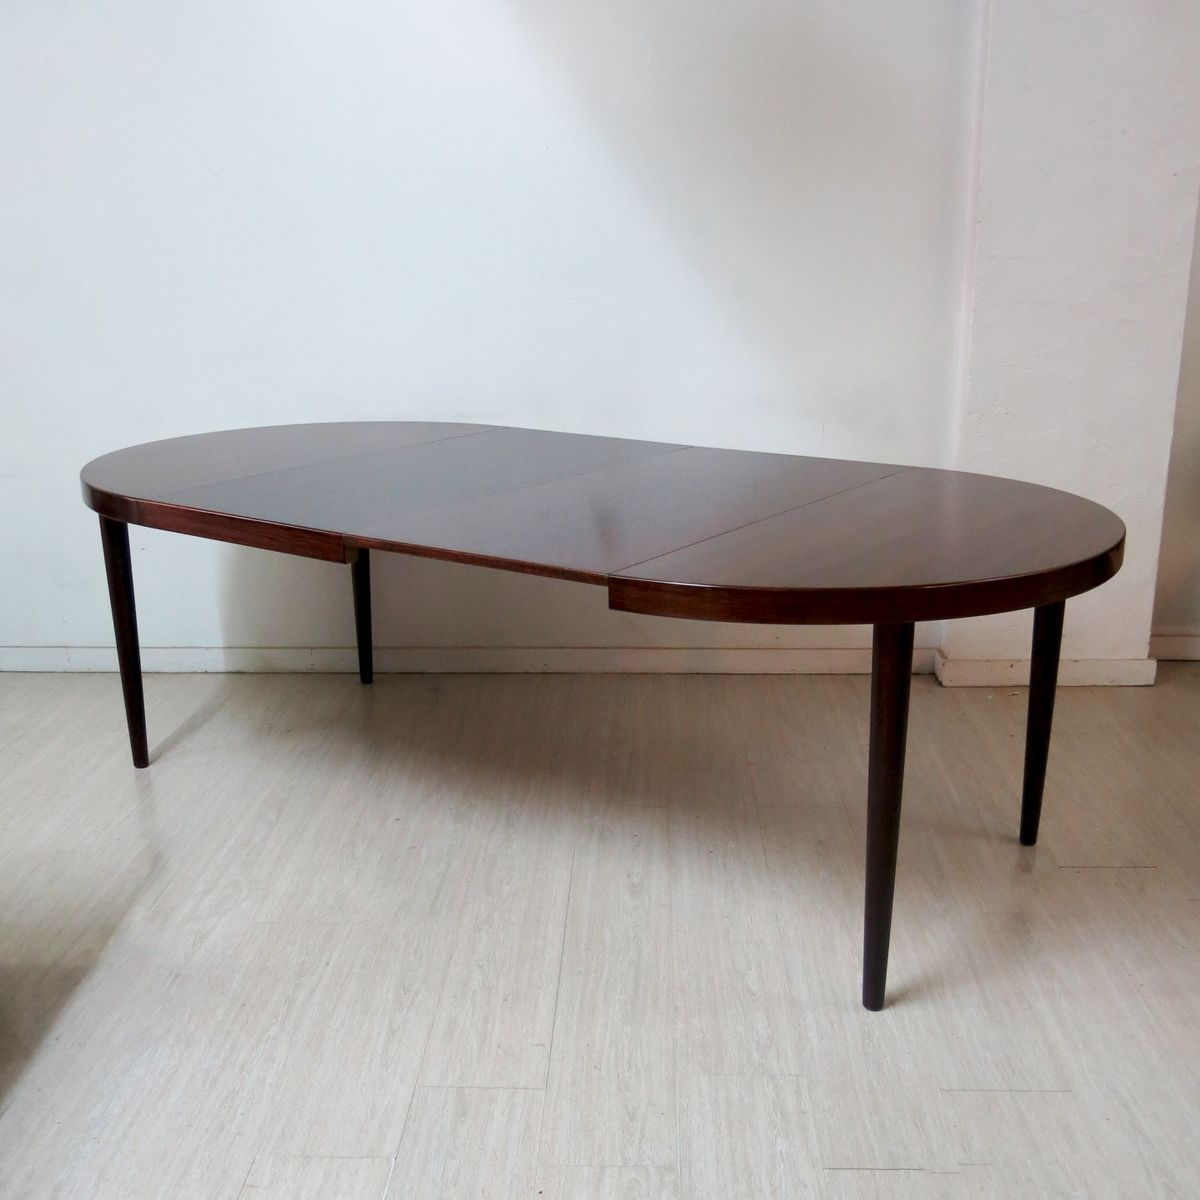 Rosewood Dining Table by Kai Kristiansen 1960s for sale  : rosewood dining table by kai kristiansen 1960s 8 from www.pamono.com size 1200 x 1200 jpeg 74kB